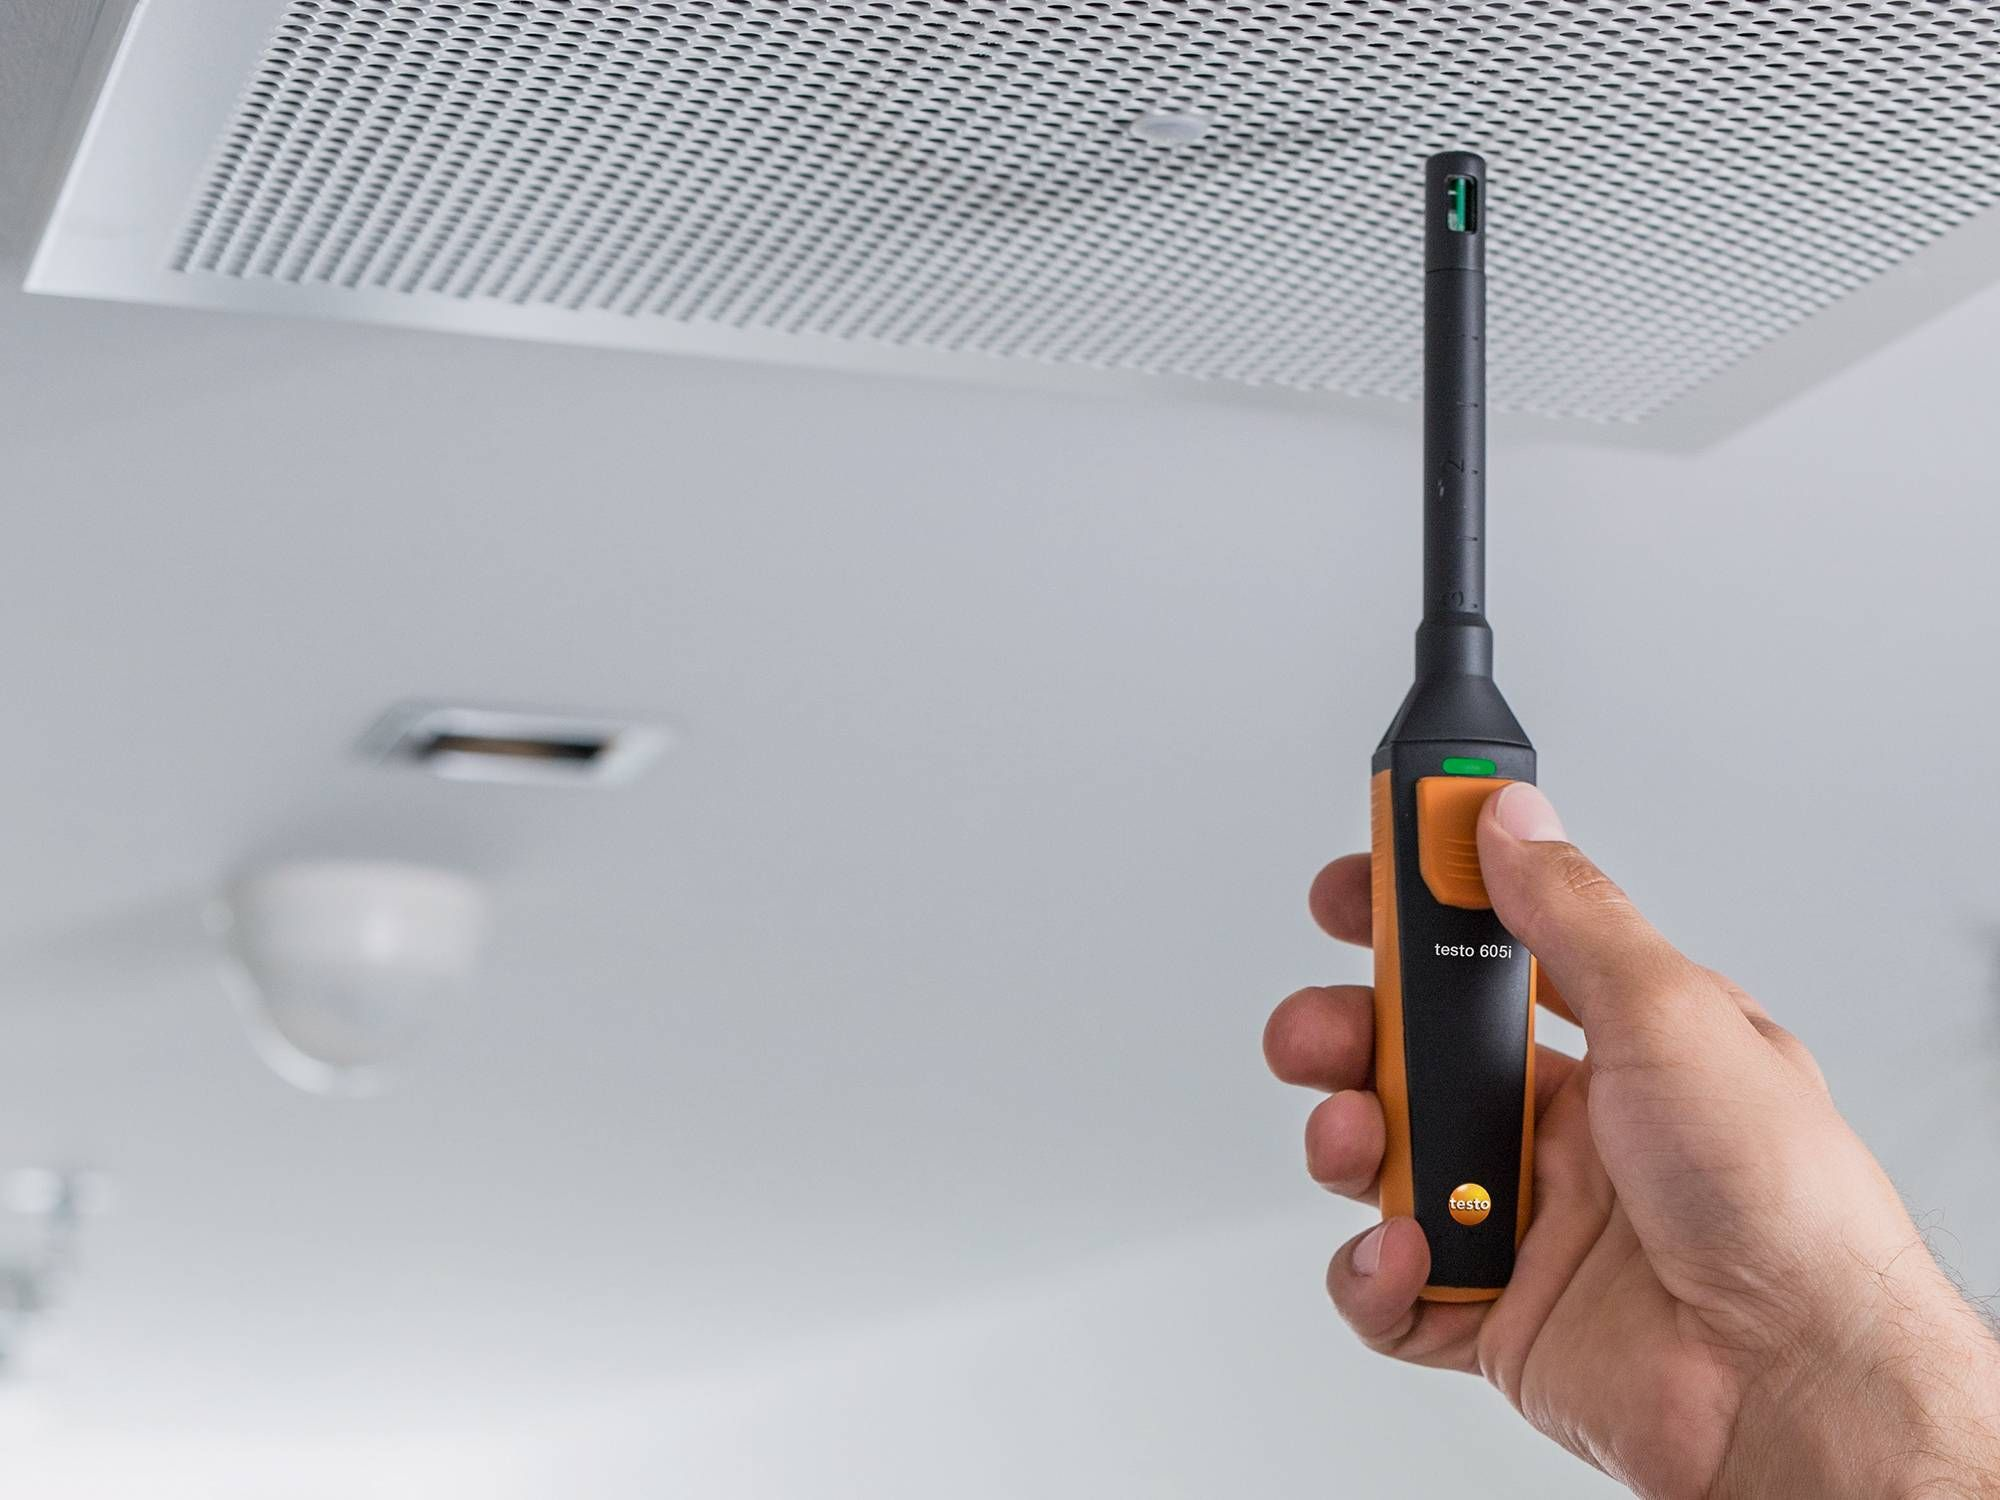 Humidity measurement in facility management